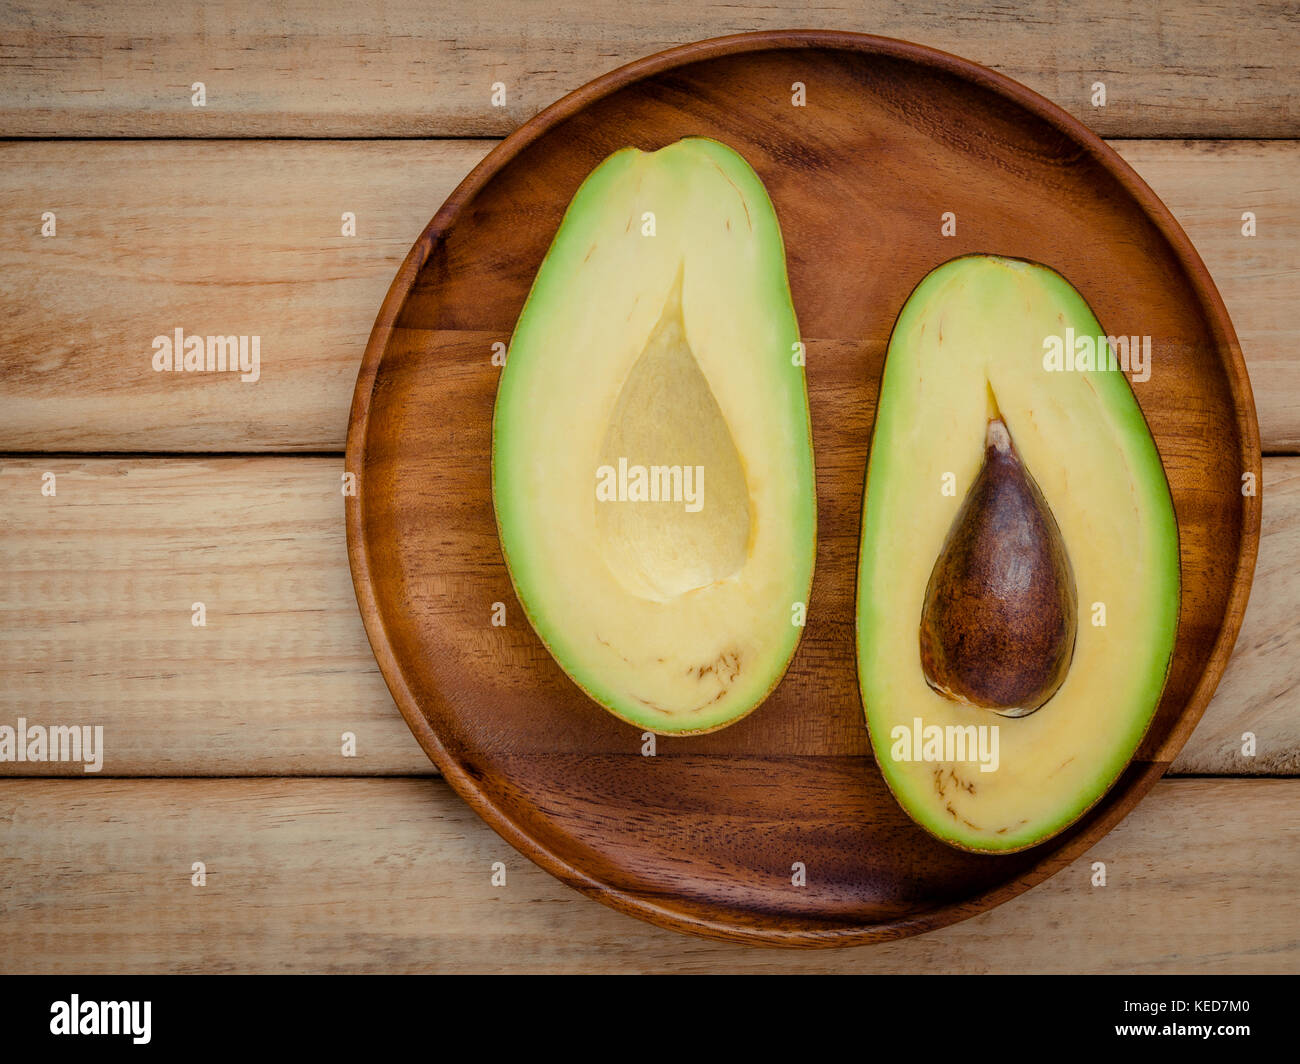 Healthy food concept.Closeup ripe avocado on wooden background. Halved organic avocado with core on wooden background. - Stock Image